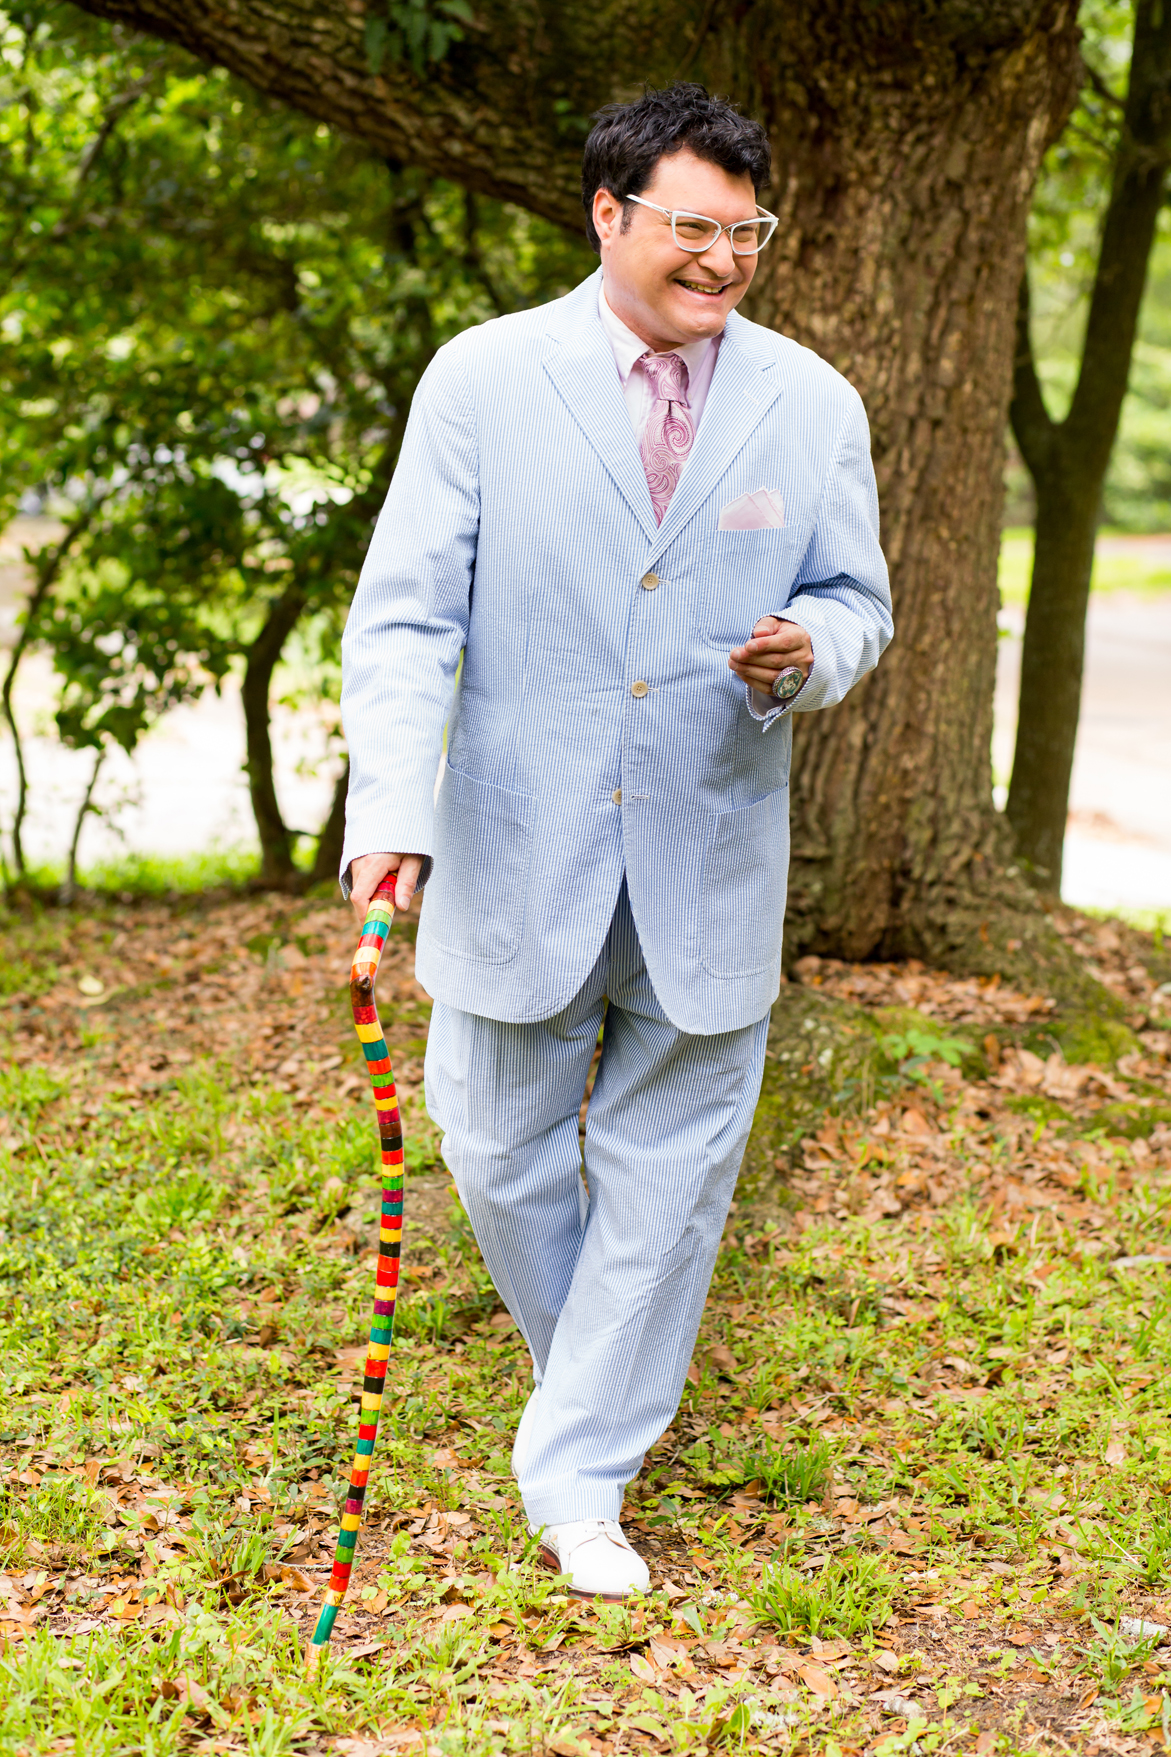 Polo by Ralph Lauren seersucker suit, Michael Kors tie, loafers from Carriage's Fine Clothiers, China Baroque ring and handmade cane by local artist Dab II